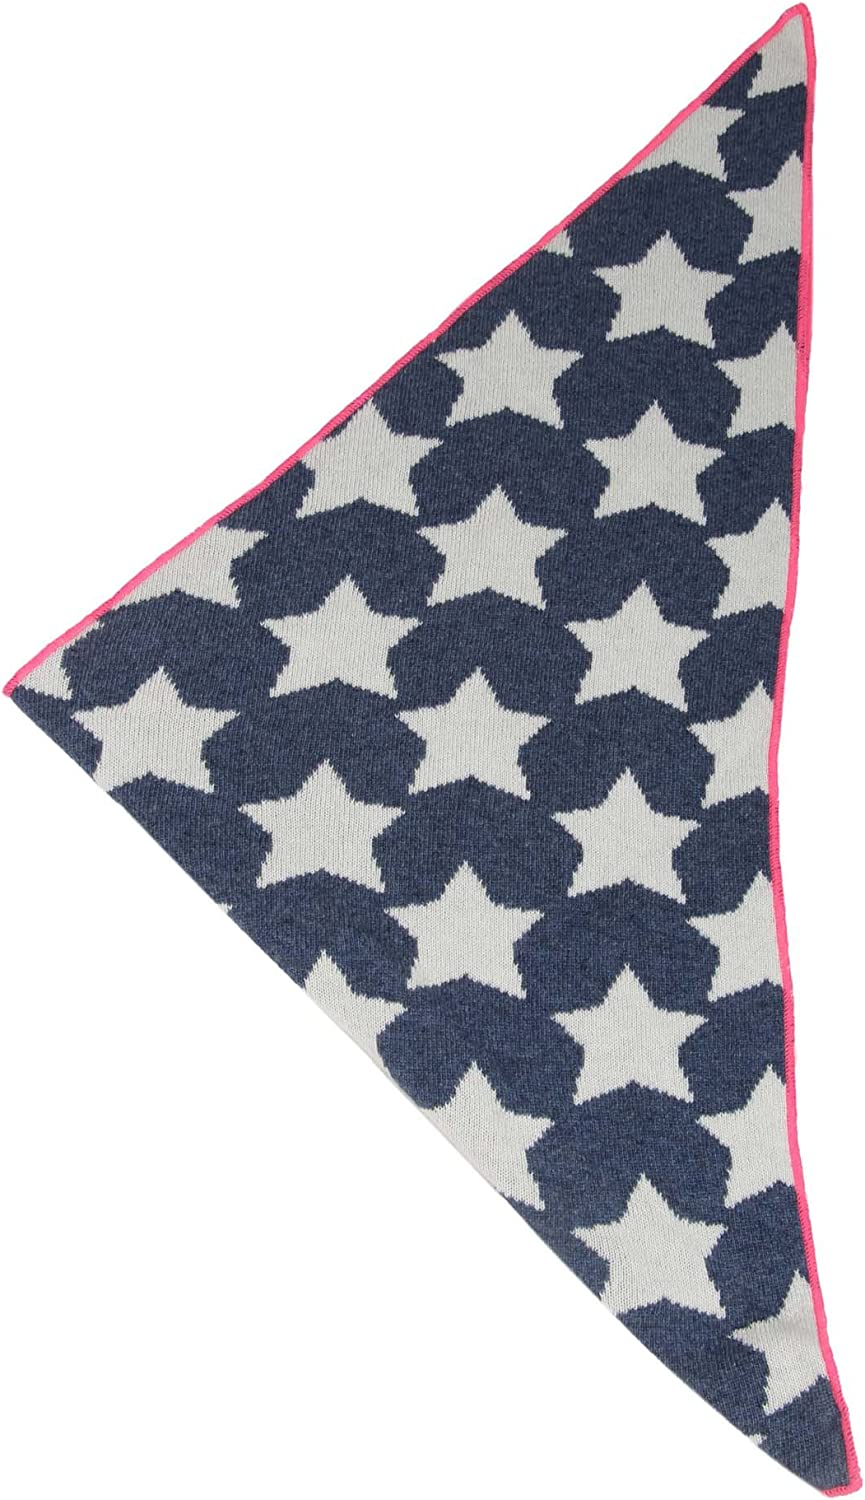 High quality scarf with stars for baby-s Boys and girls Cashmere Dreams knitwear for summer and winter XXL Neck Scarf and Ladies Zwillingsherz Cashmere Triangle Scarf